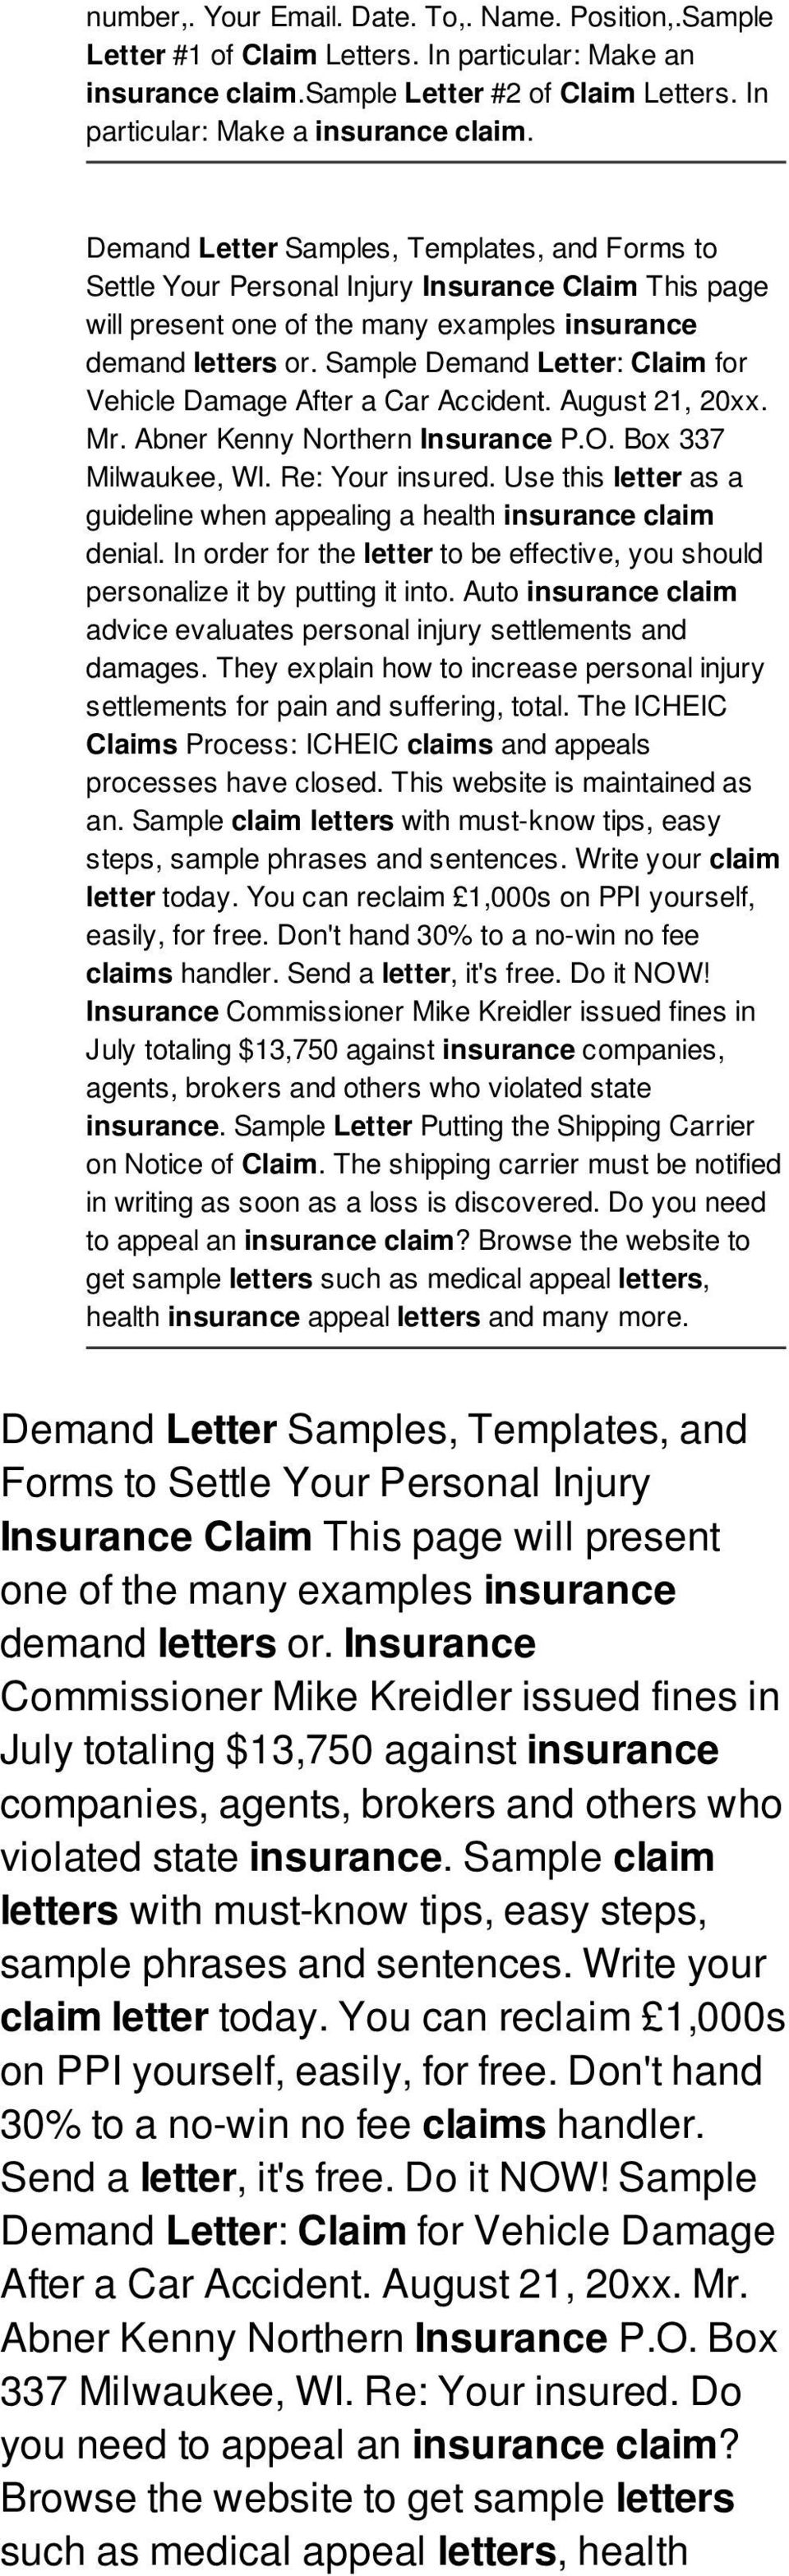 Sample Demand Letter: Claim for Vehicle Damage After a Car Accident. August 21, 20xx. Mr. Abner Kenny Northern Insurance P.O. Box 337 Milwaukee, WI. Re: Your insured.